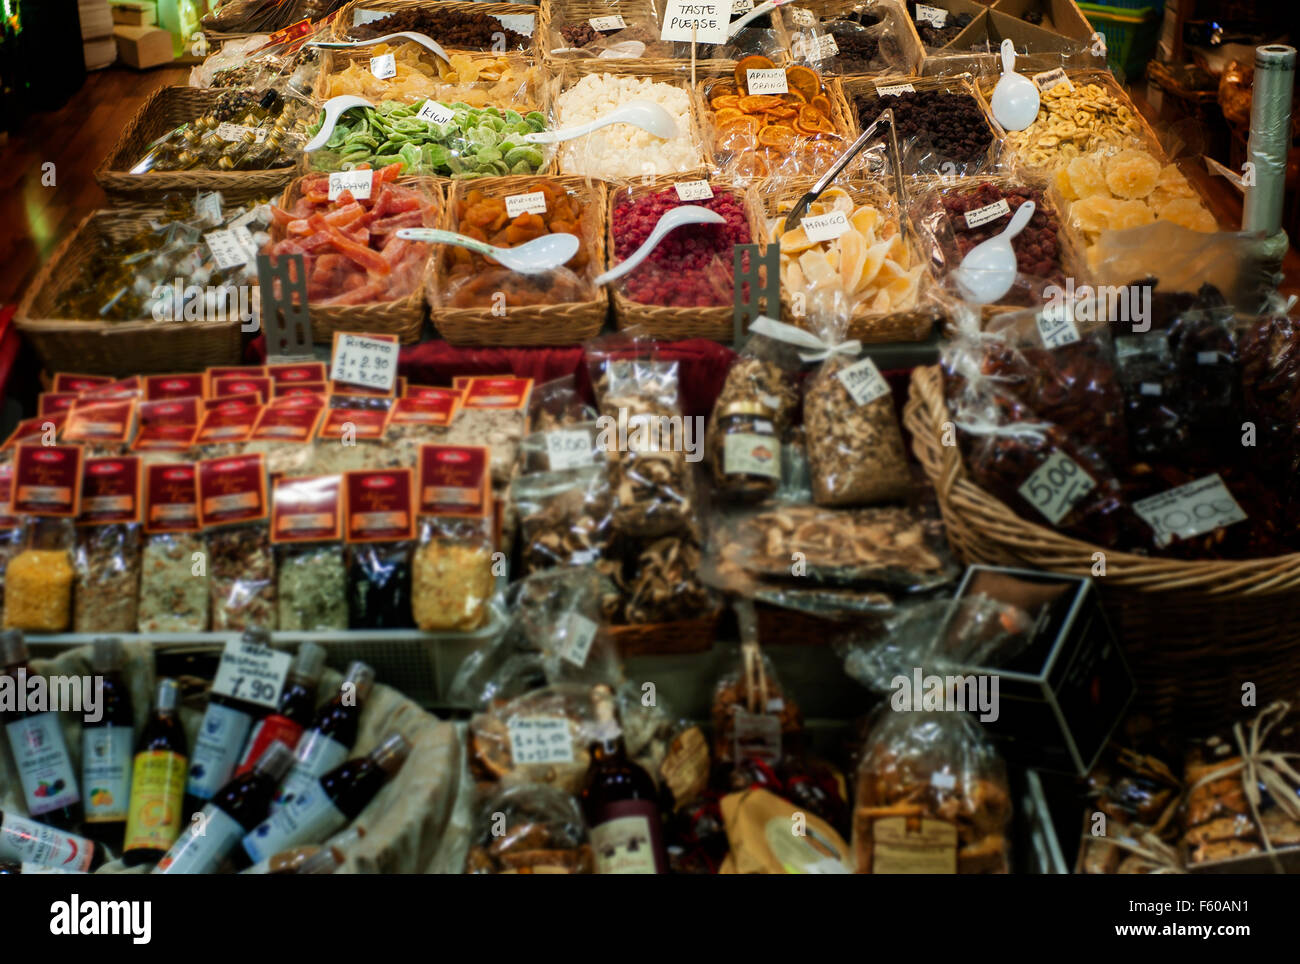 Dried foods,herb and spice shop display Florence Mercato Centrale central market Italy Stock Photo